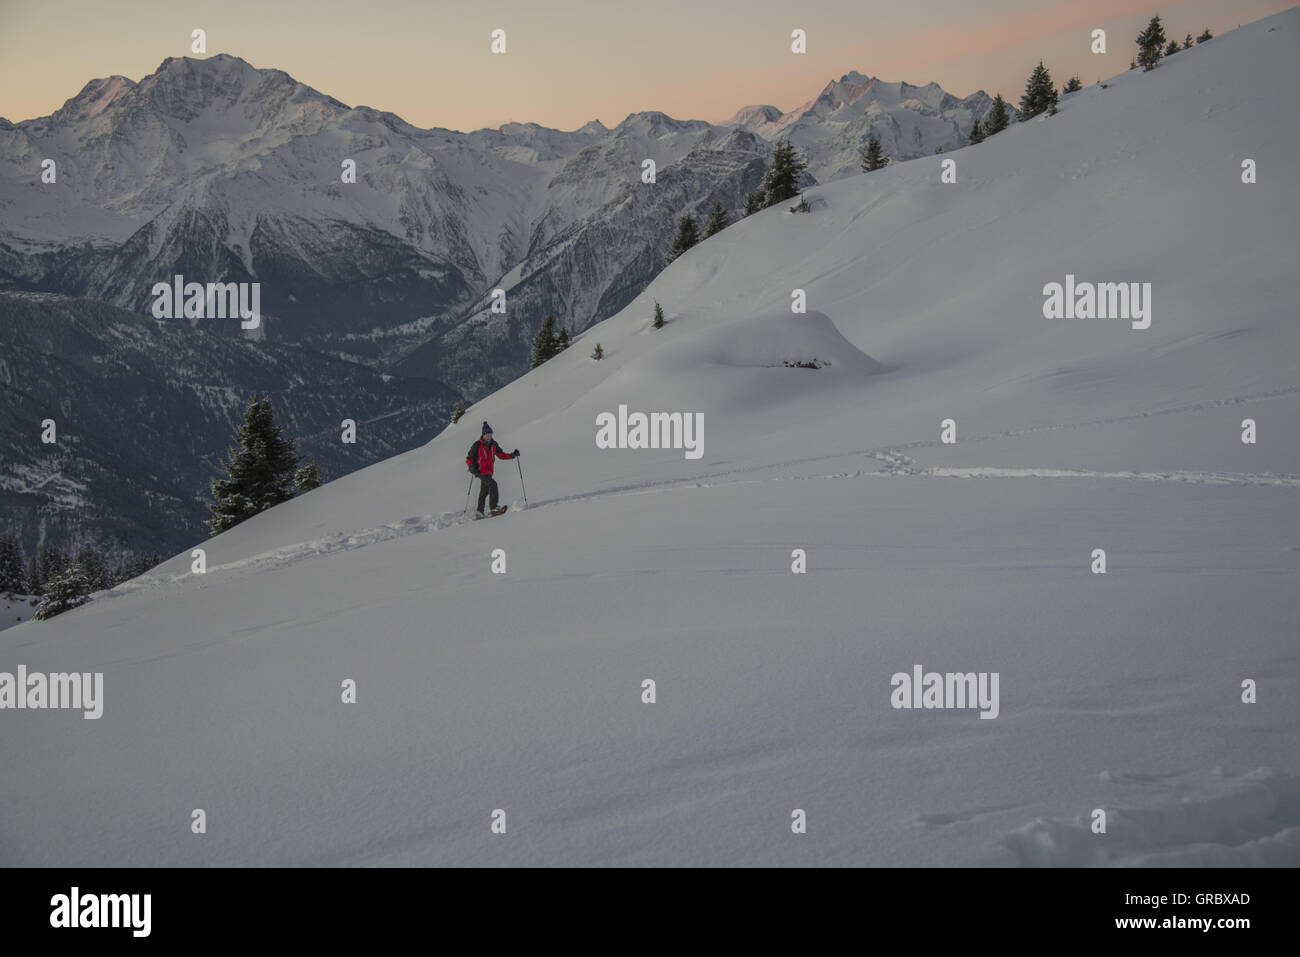 Female Snowshoer At Dawn, Moving Uphill On A Snowfield, In The Background Snowy Mountains - Stock Image